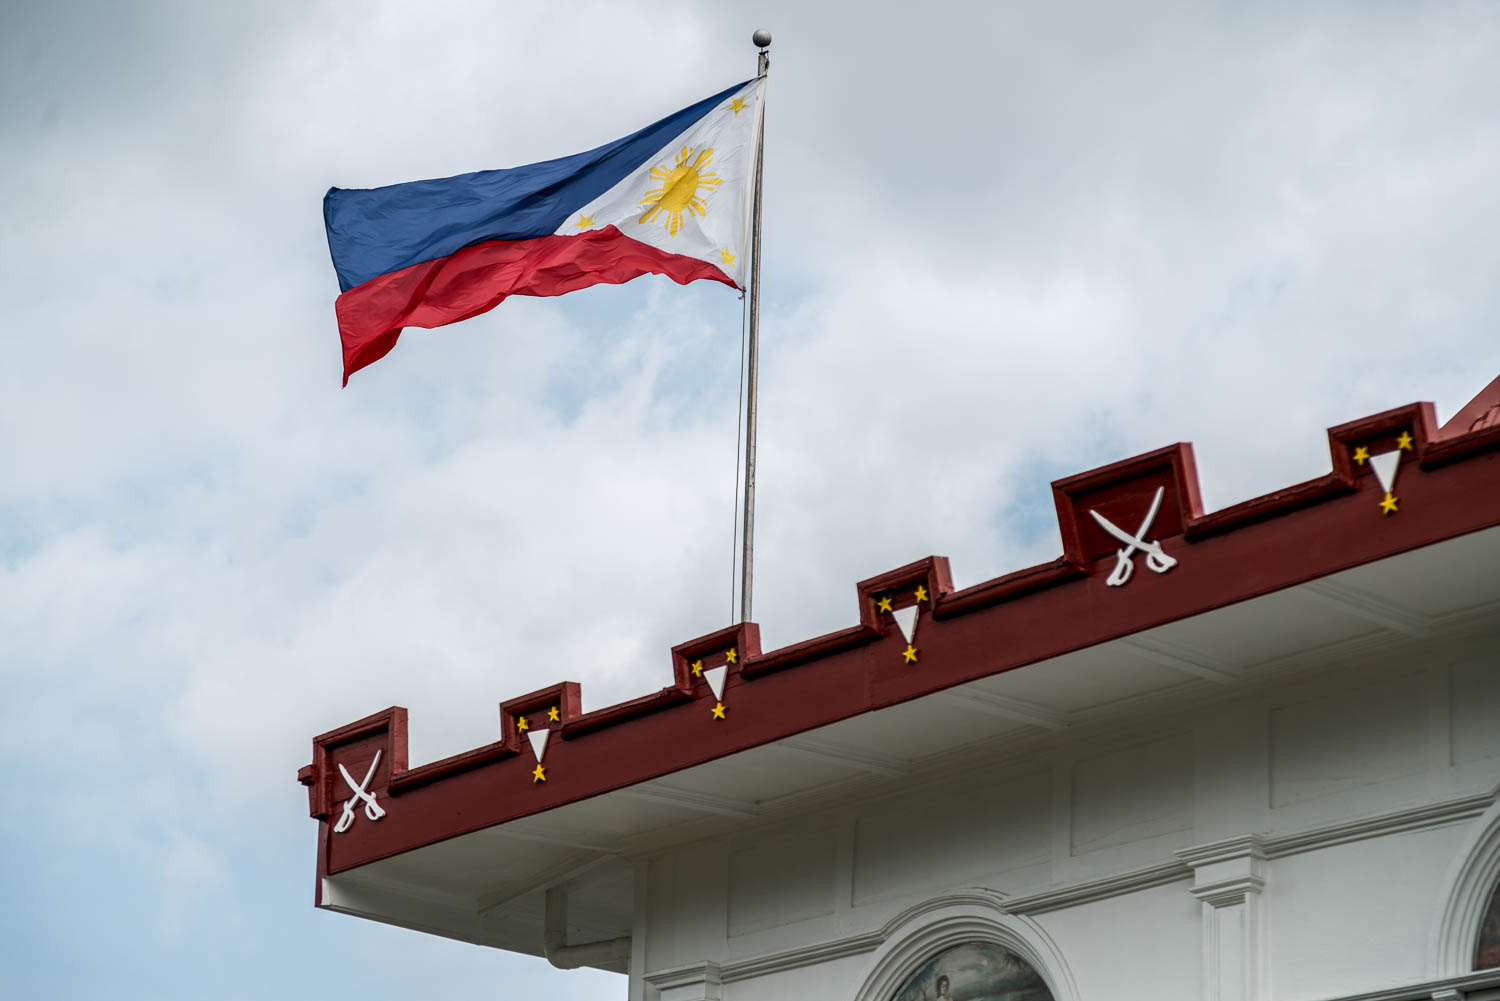 The shade of blue of our Philippine flag was changed to sky blue in 1985 by then Pres. Marcos, then back to navy blue in 1987 by then Pres. Aquino, then to royal blue (current shade) in 1998. Unlike the present day flag, the original flag had a mythological sun with a face, similar to the flag flown by the revolutionary government.